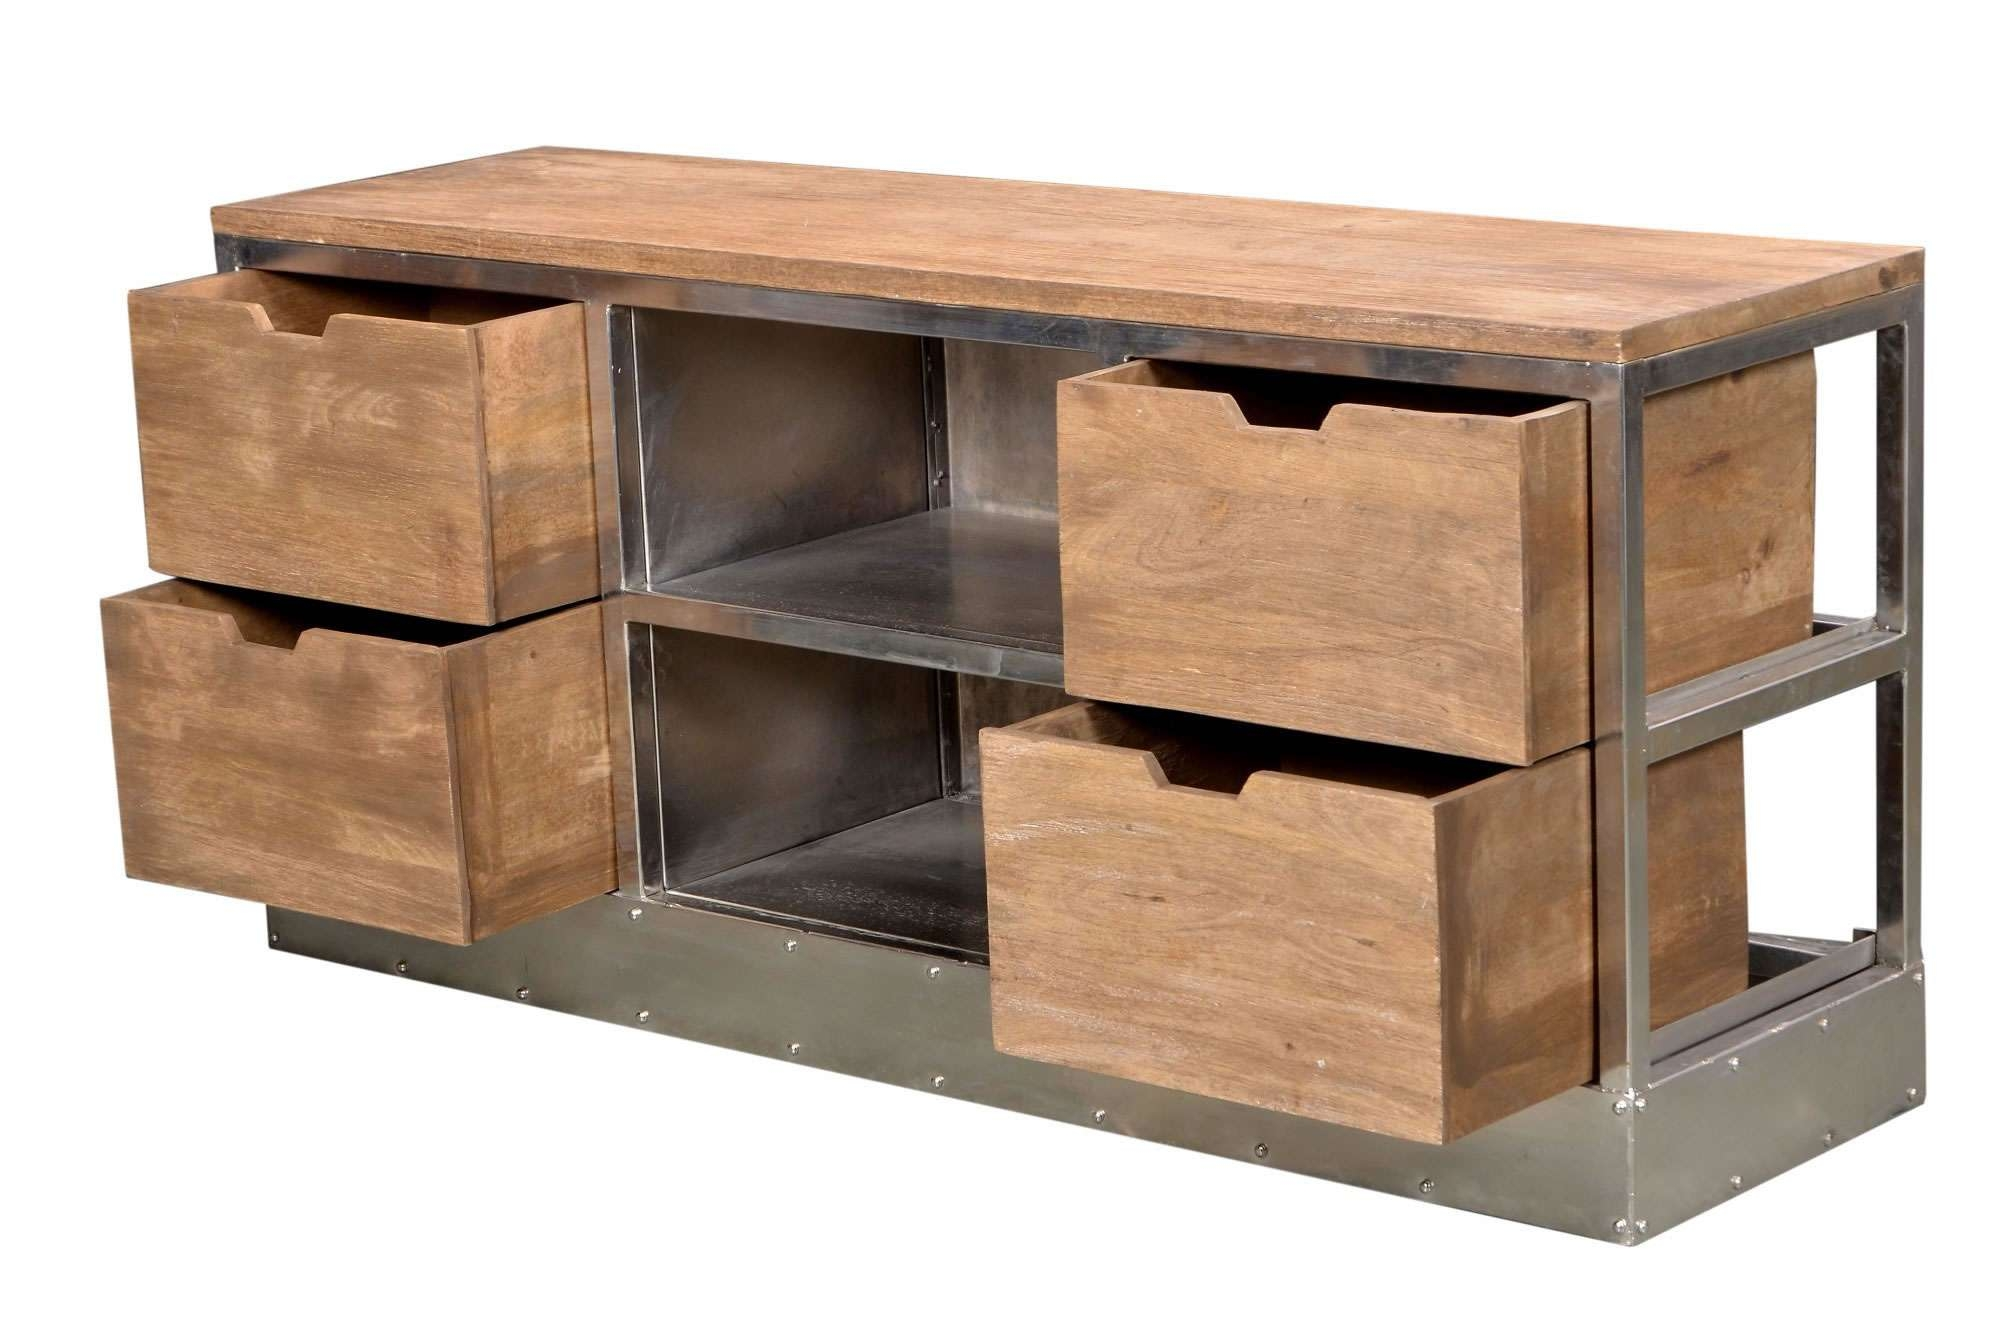 Cdi Furniture Industrial Tv Cabinet With 4 Drawers – Disc Cdi Inside Industrial Tv Cabinets (View 3 of 20)